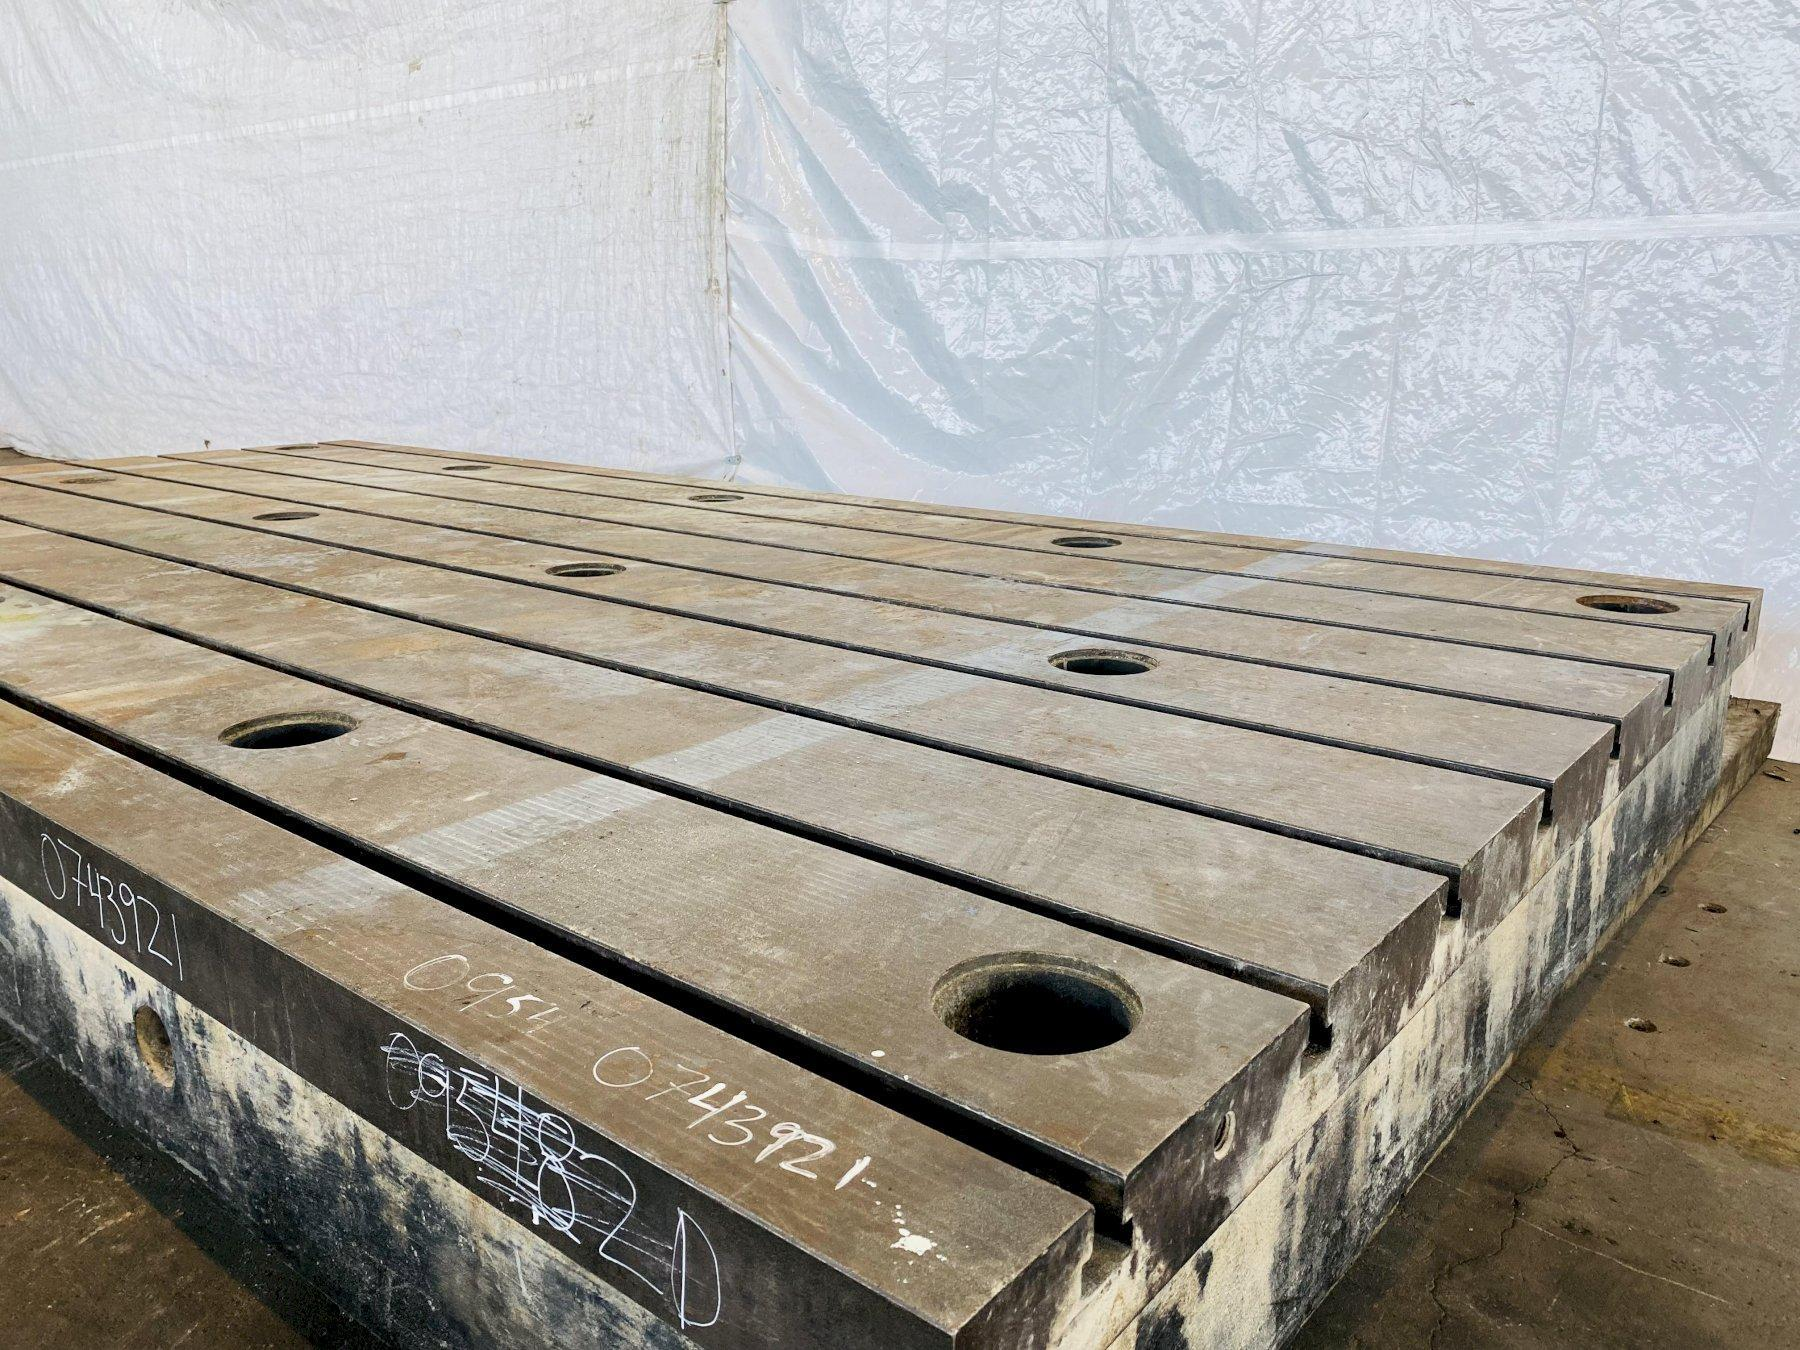 """79"""" x 157"""" X 12"""" SABIEM SYSTEM CAST PRECISION T-SLOTTED FLOOR PLATE. STOCK # 0954820"""